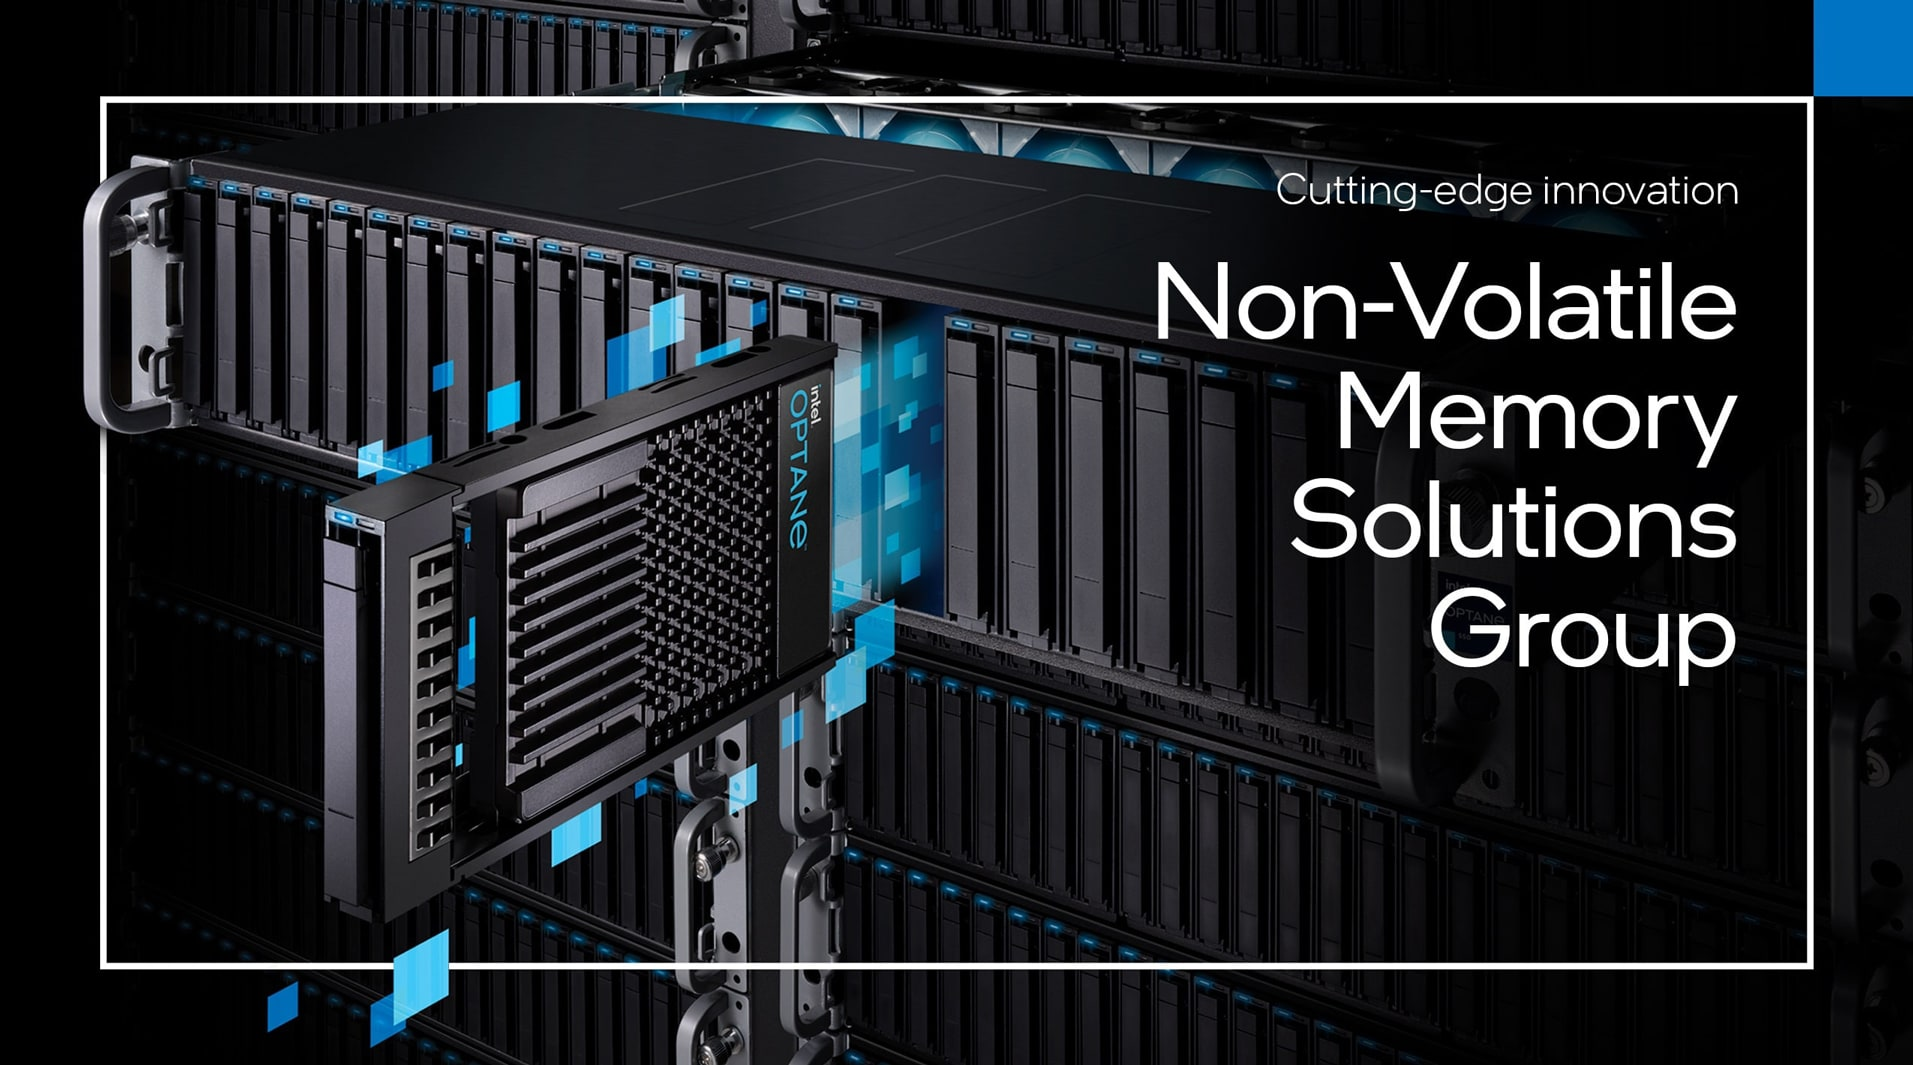 Non-Volatile Memory Solutions Group